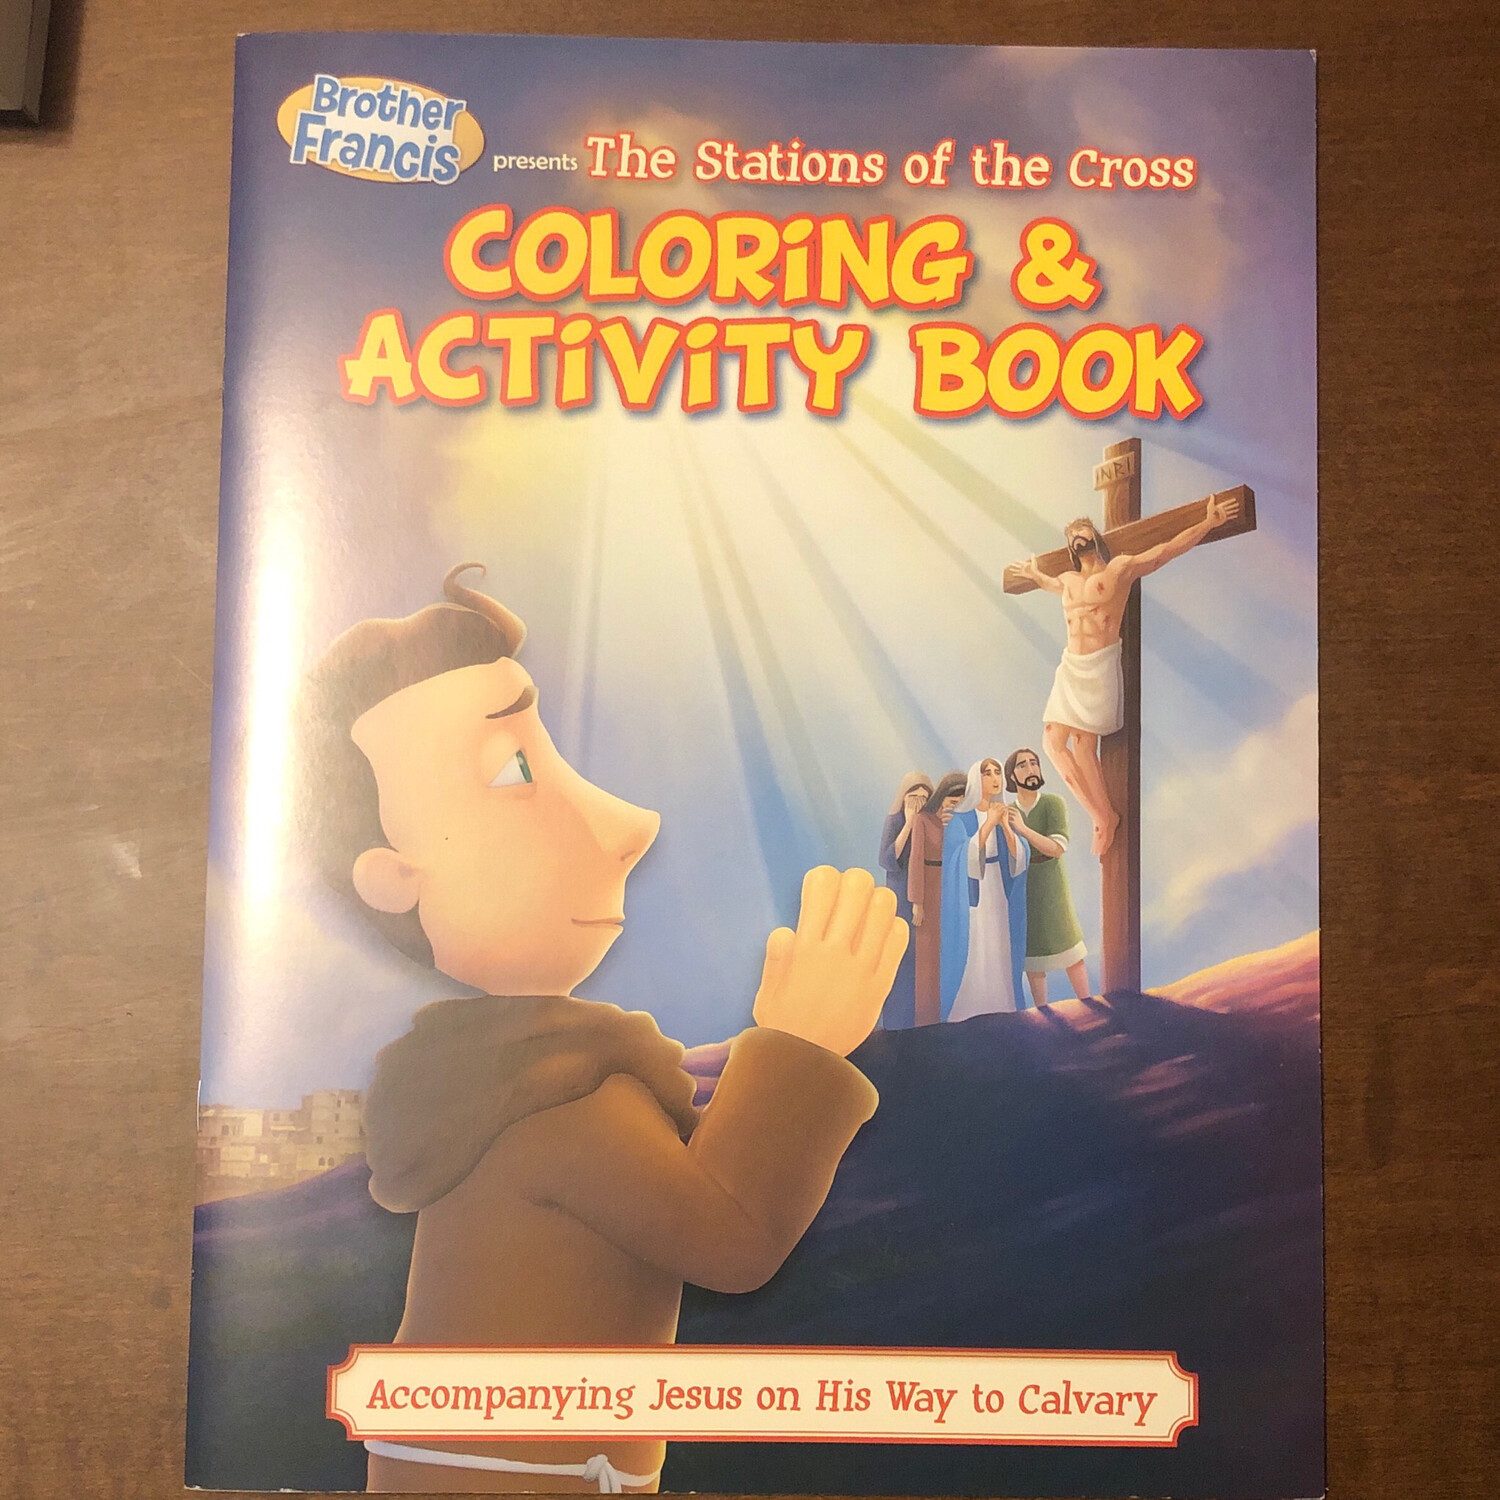 The Stations of the Cross Coloring and Activity Book: Brother Francis